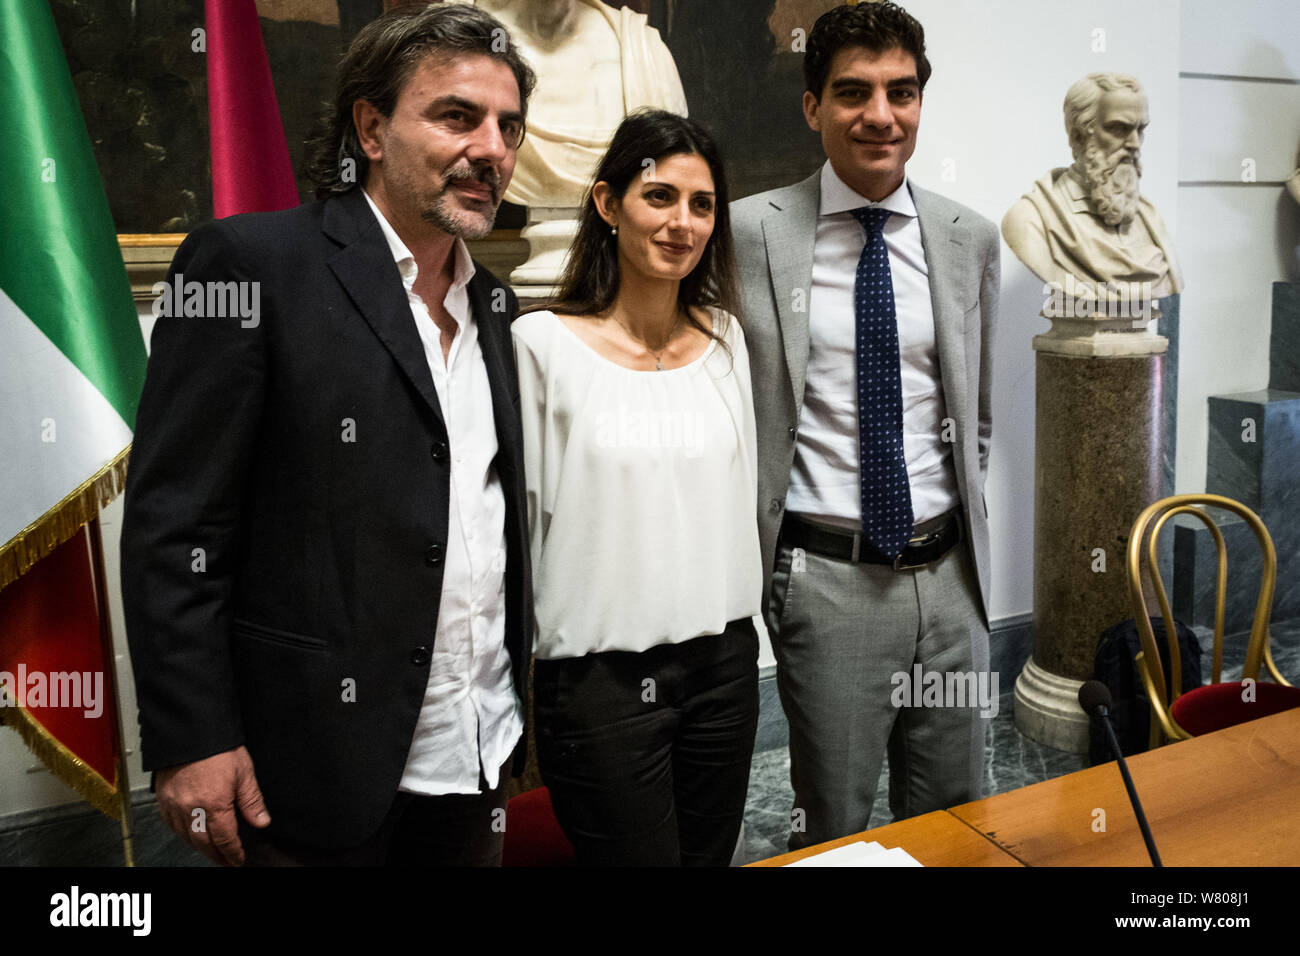 Rome, Italy. 07th Aug, 2019. Presented at the Capitol, the Urban Plan for Mobility in Rome was officially illustrated today by the Mayor of Rome, Virginia Raggi, by the President of the Mobility Commission, Pietro Calabrese, and by his predecessor Enrico Stefano. (Photo by Andrea Ronchini/Pacific Press) Credit: Pacific Press Agency/Alamy Live News Stock Photo